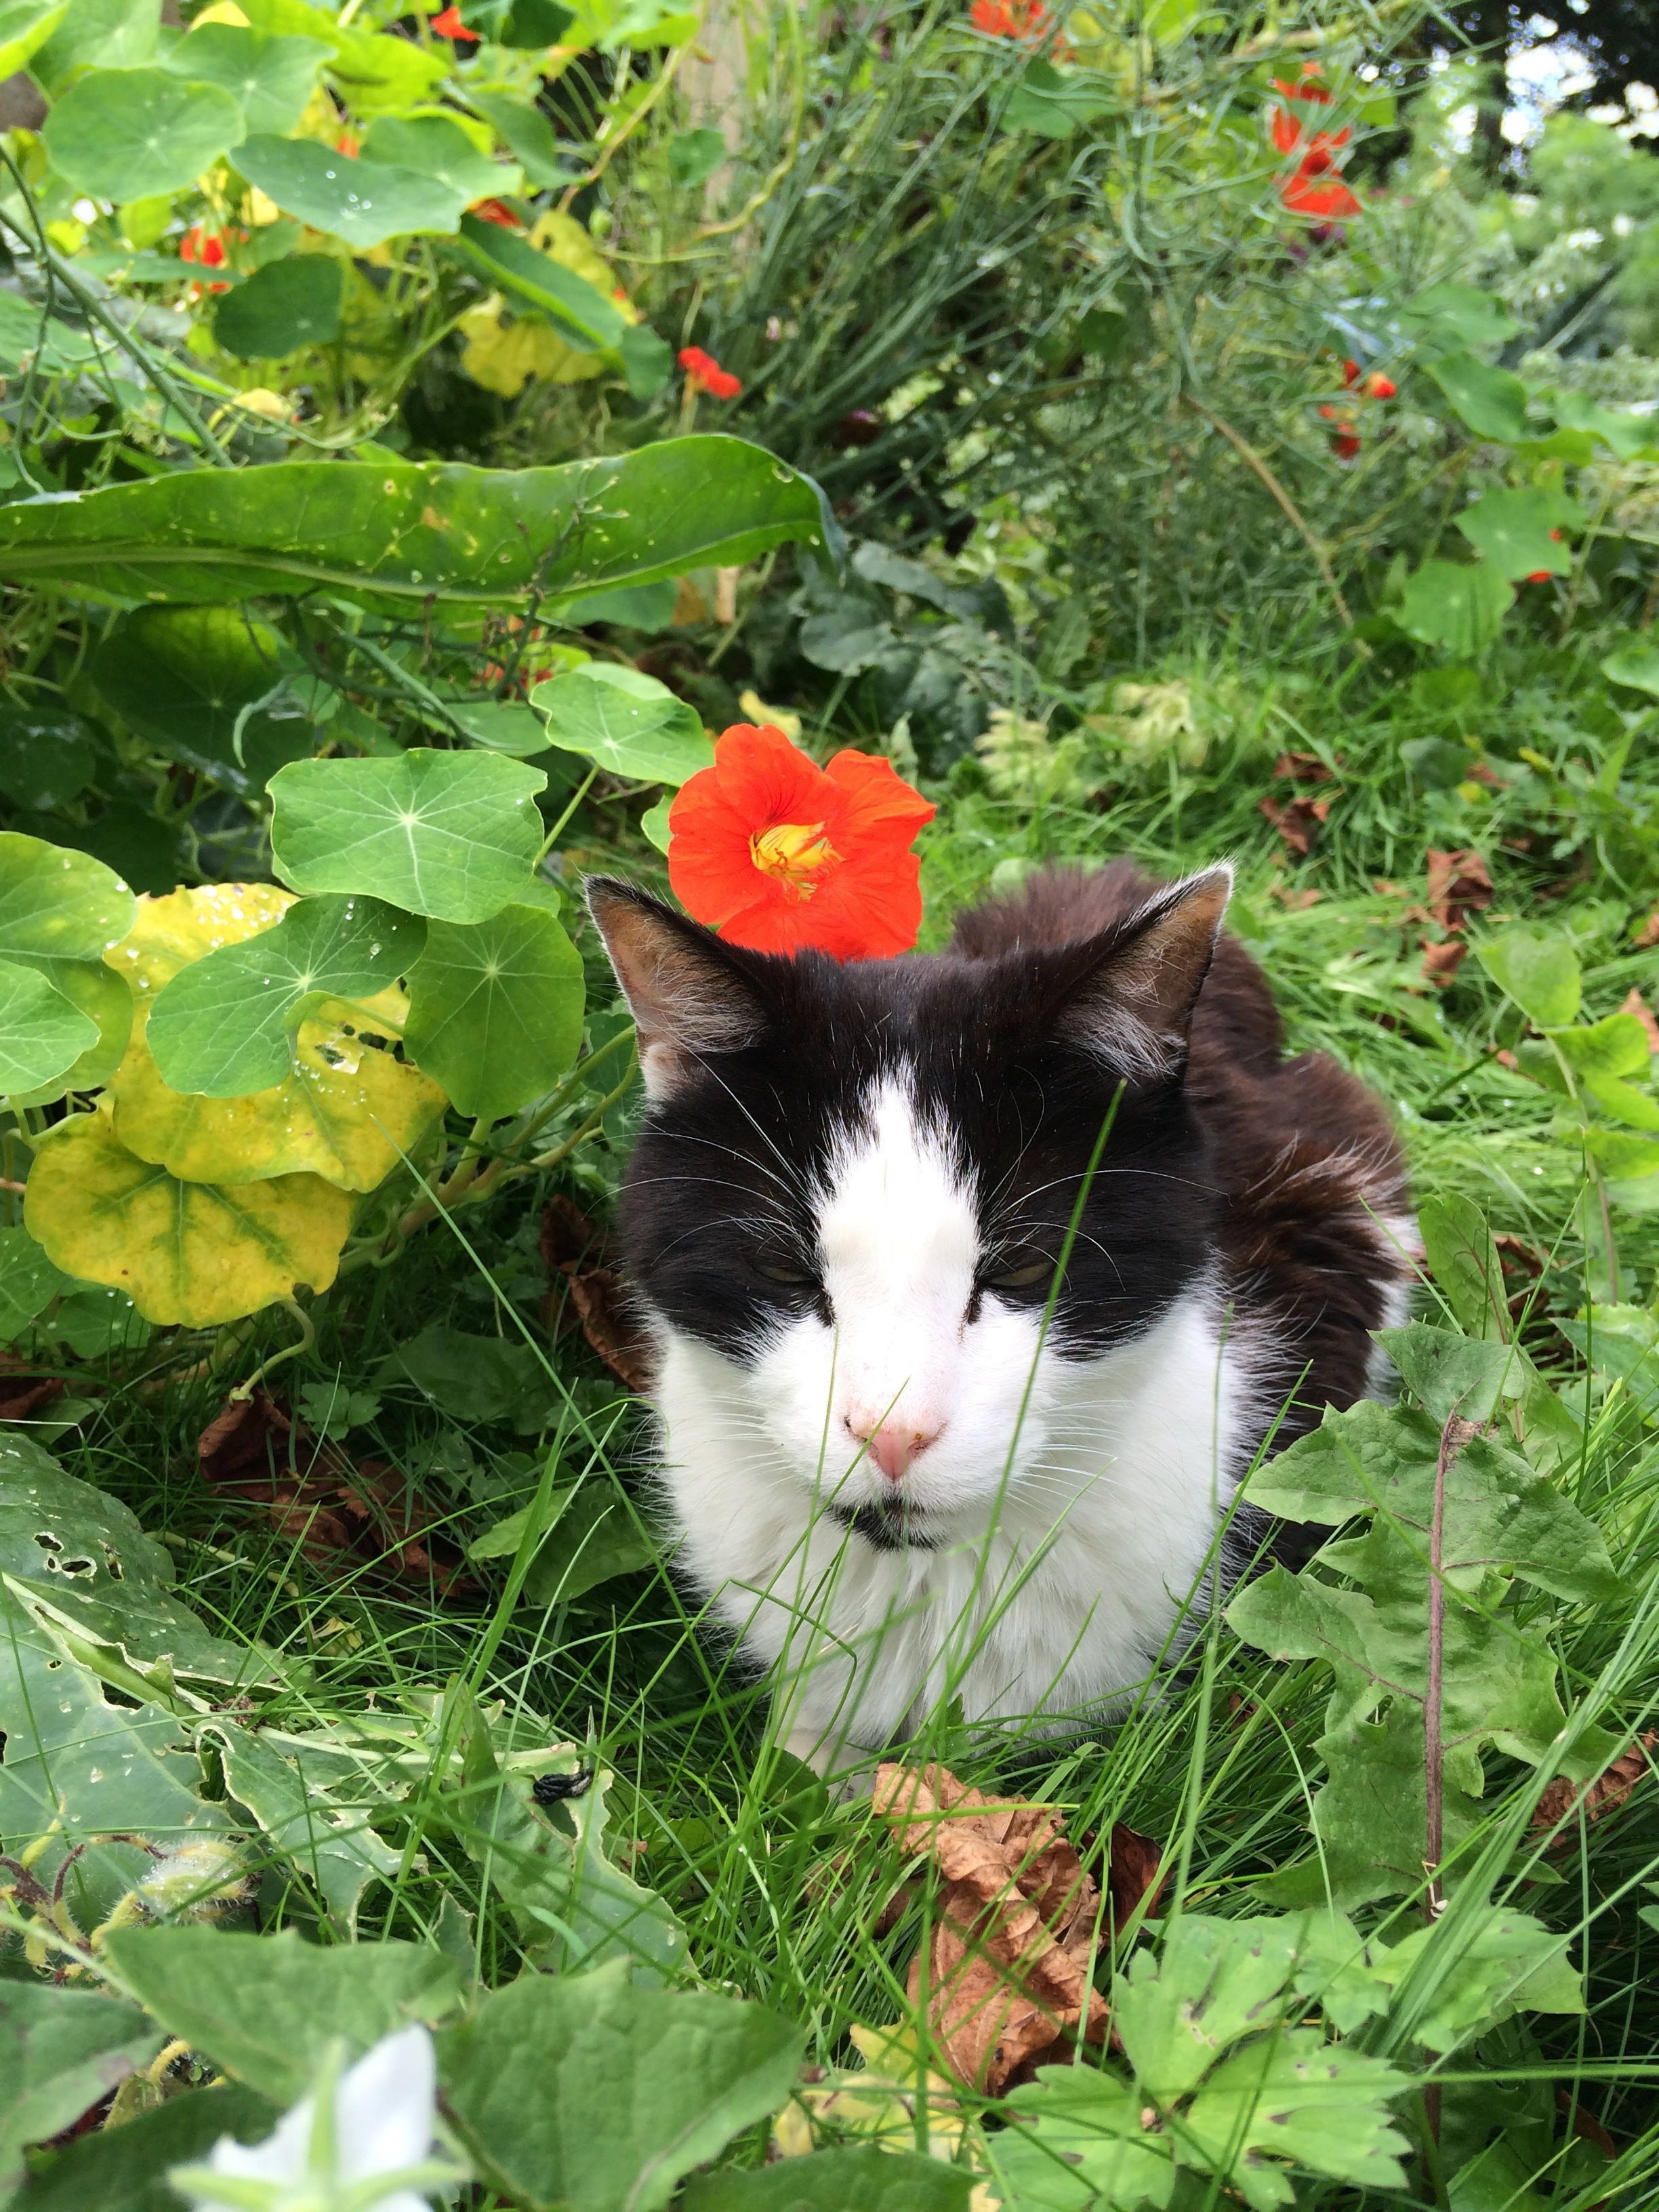 Stan chilling in among the nasturtiums